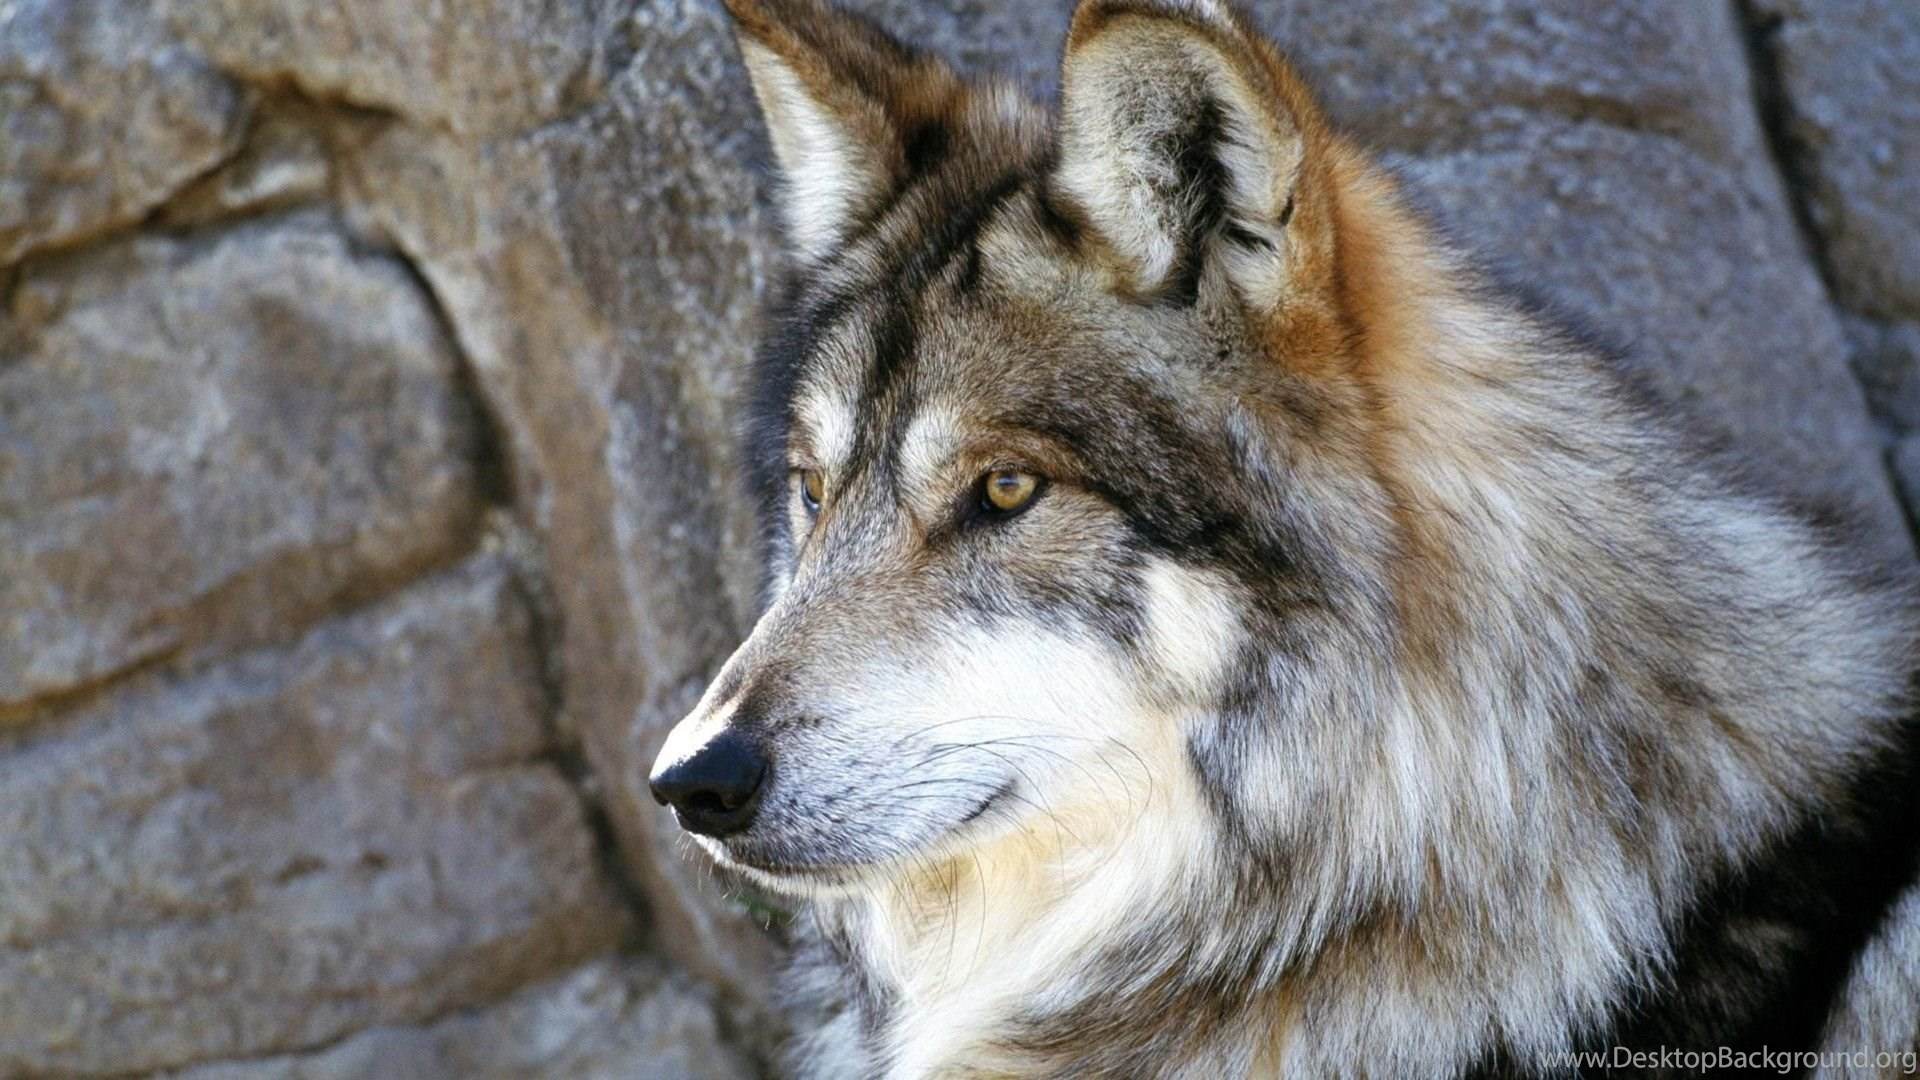 HD Quality Wild Wolf Wallpapers 3 Widescreen Backgrounds